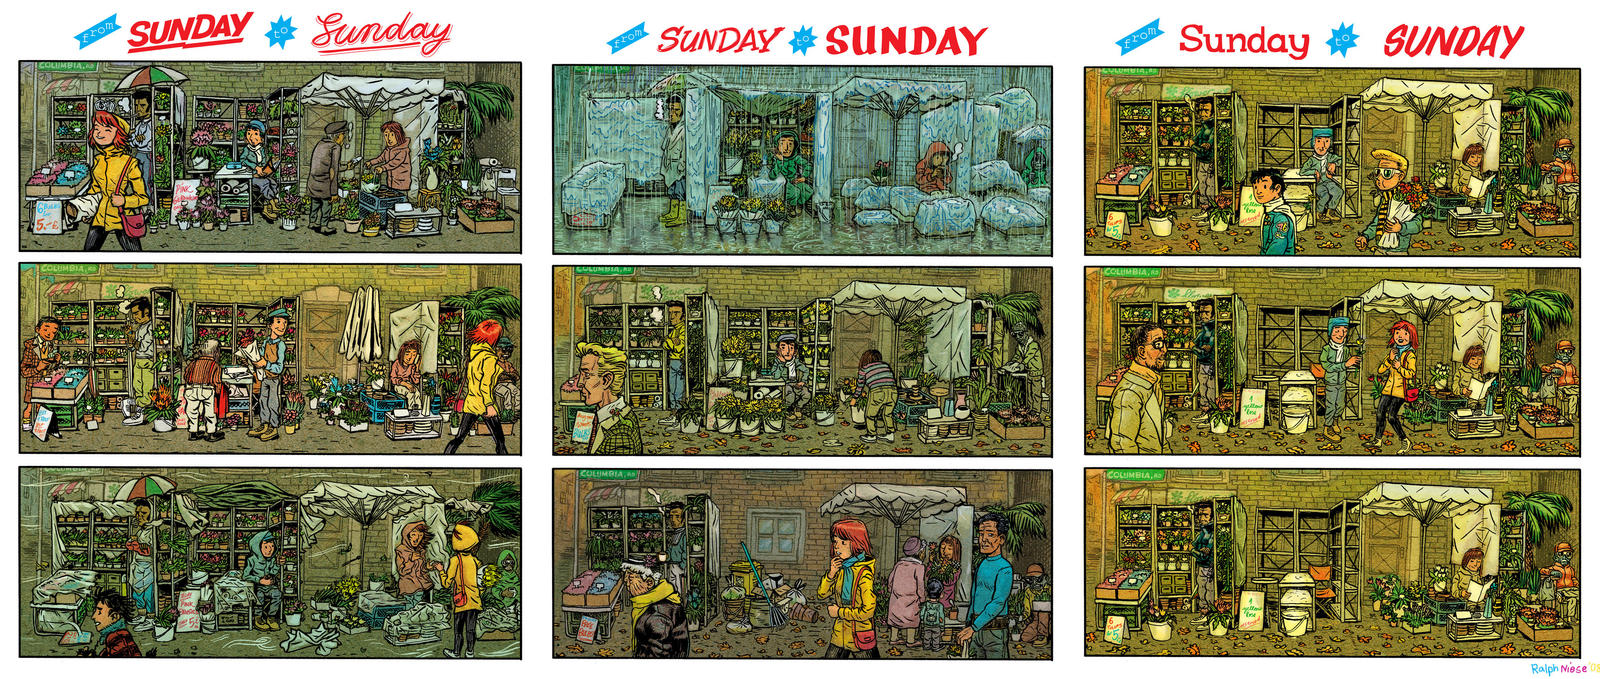 From Sunday To Sunday by RalphNiese